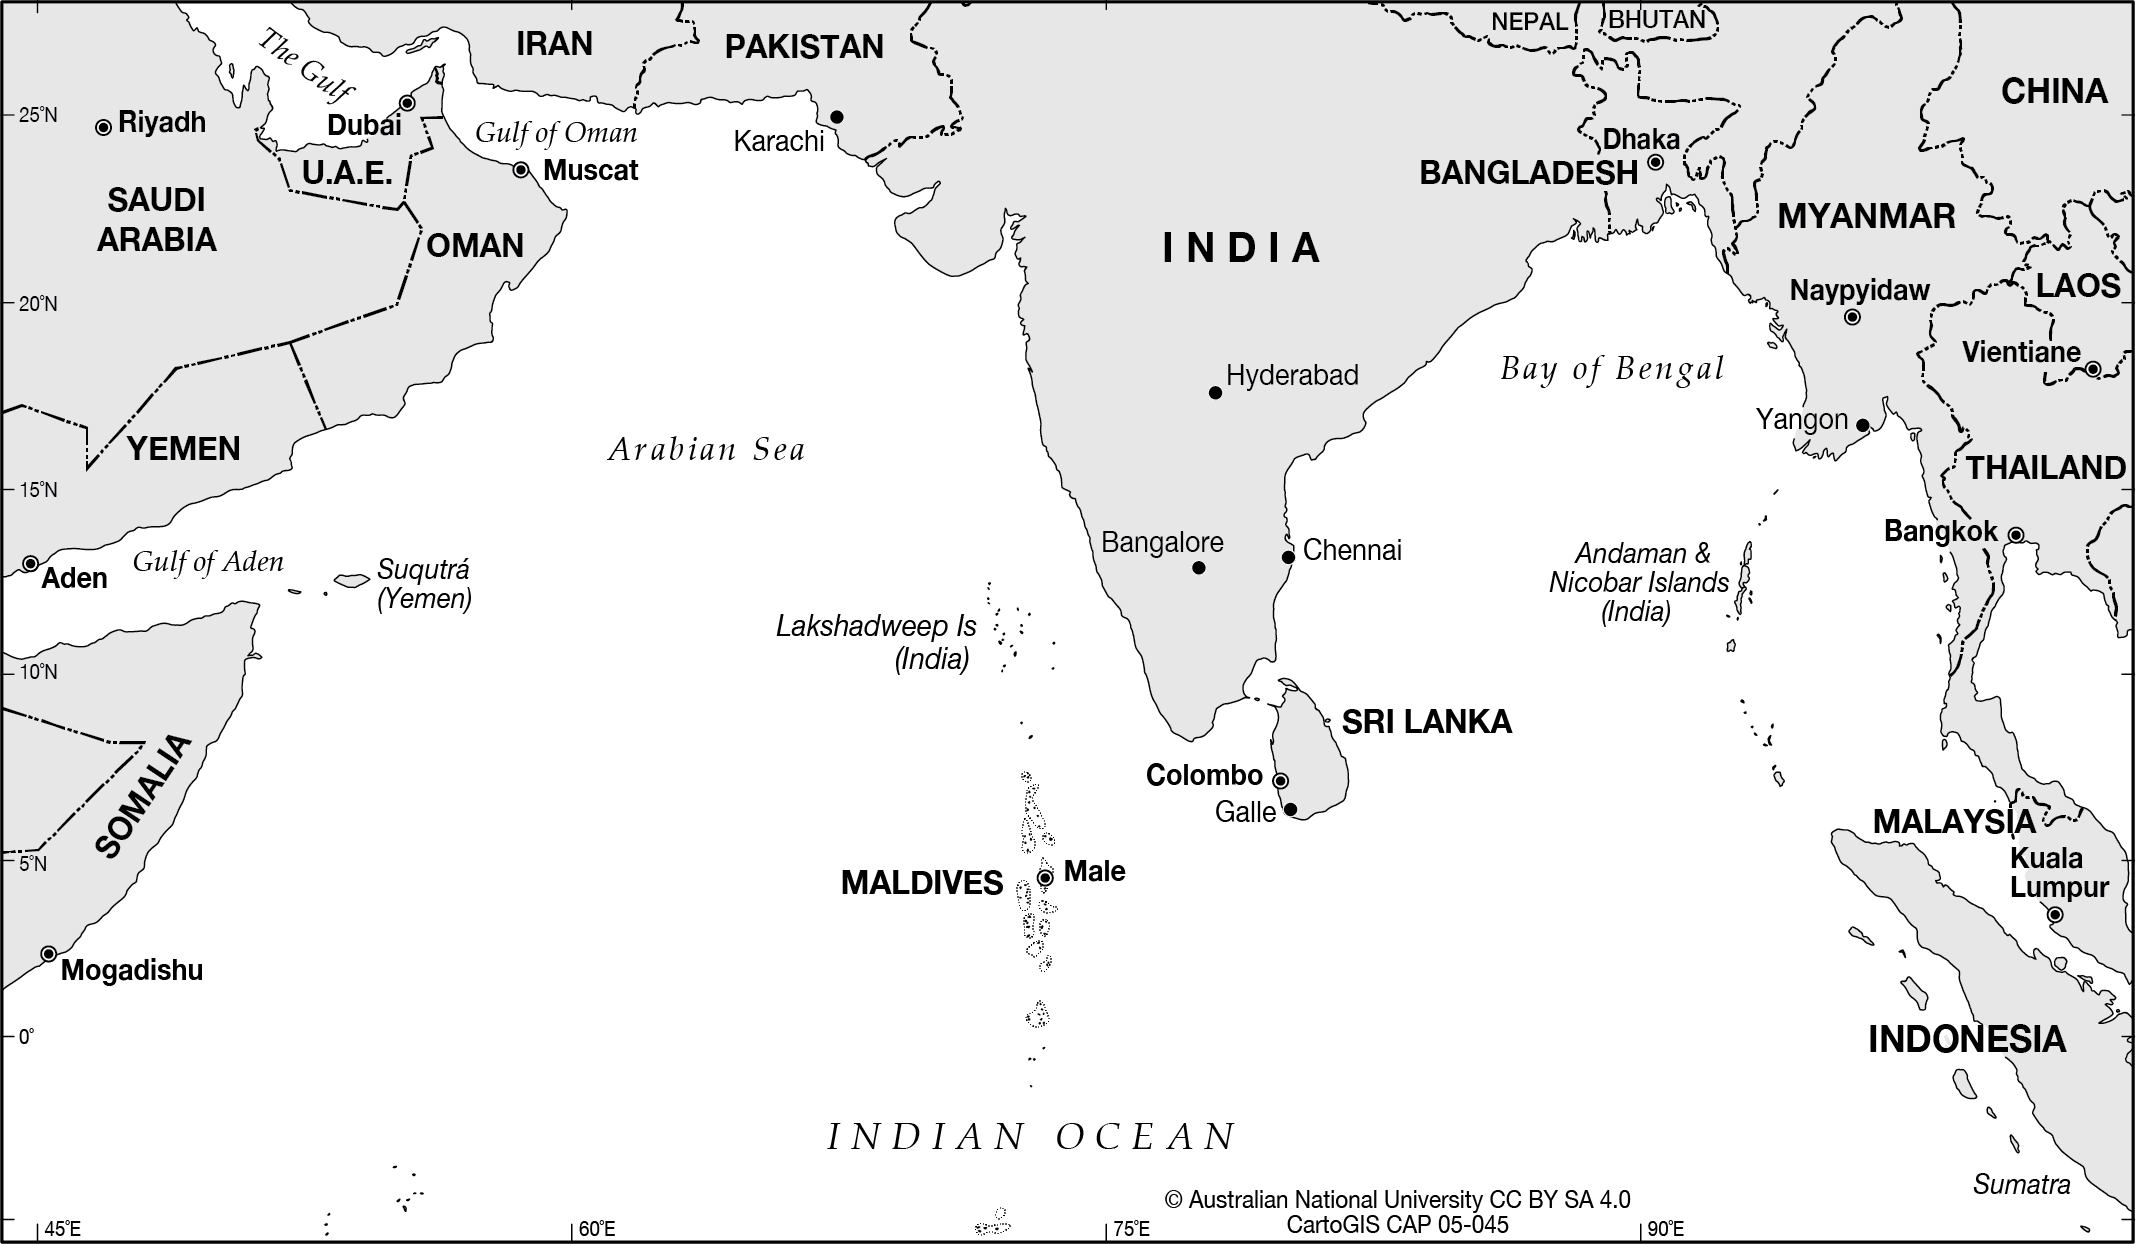 North Indian Ocean - CartoGIS Services Maps Online - ANU on atlantic ocean, korean peninsula map, arabian sea, comoros map, bay of bengal, world map, pacific ocean, persian gulf, silk road, india map, caspian sea, south china sea, middle east map, equator map, christmas island, ukraine map, south america map, china map, africa map, bay of bengal map, cape of good hope map, caribbean sea, mediterranean sea, iran map, pacific map, arctic ocean, australia map, black sea, south asia, java map, latin america map, persian gulf map, arabian sea map, southern ocean, world ocean, asia map, red sea,